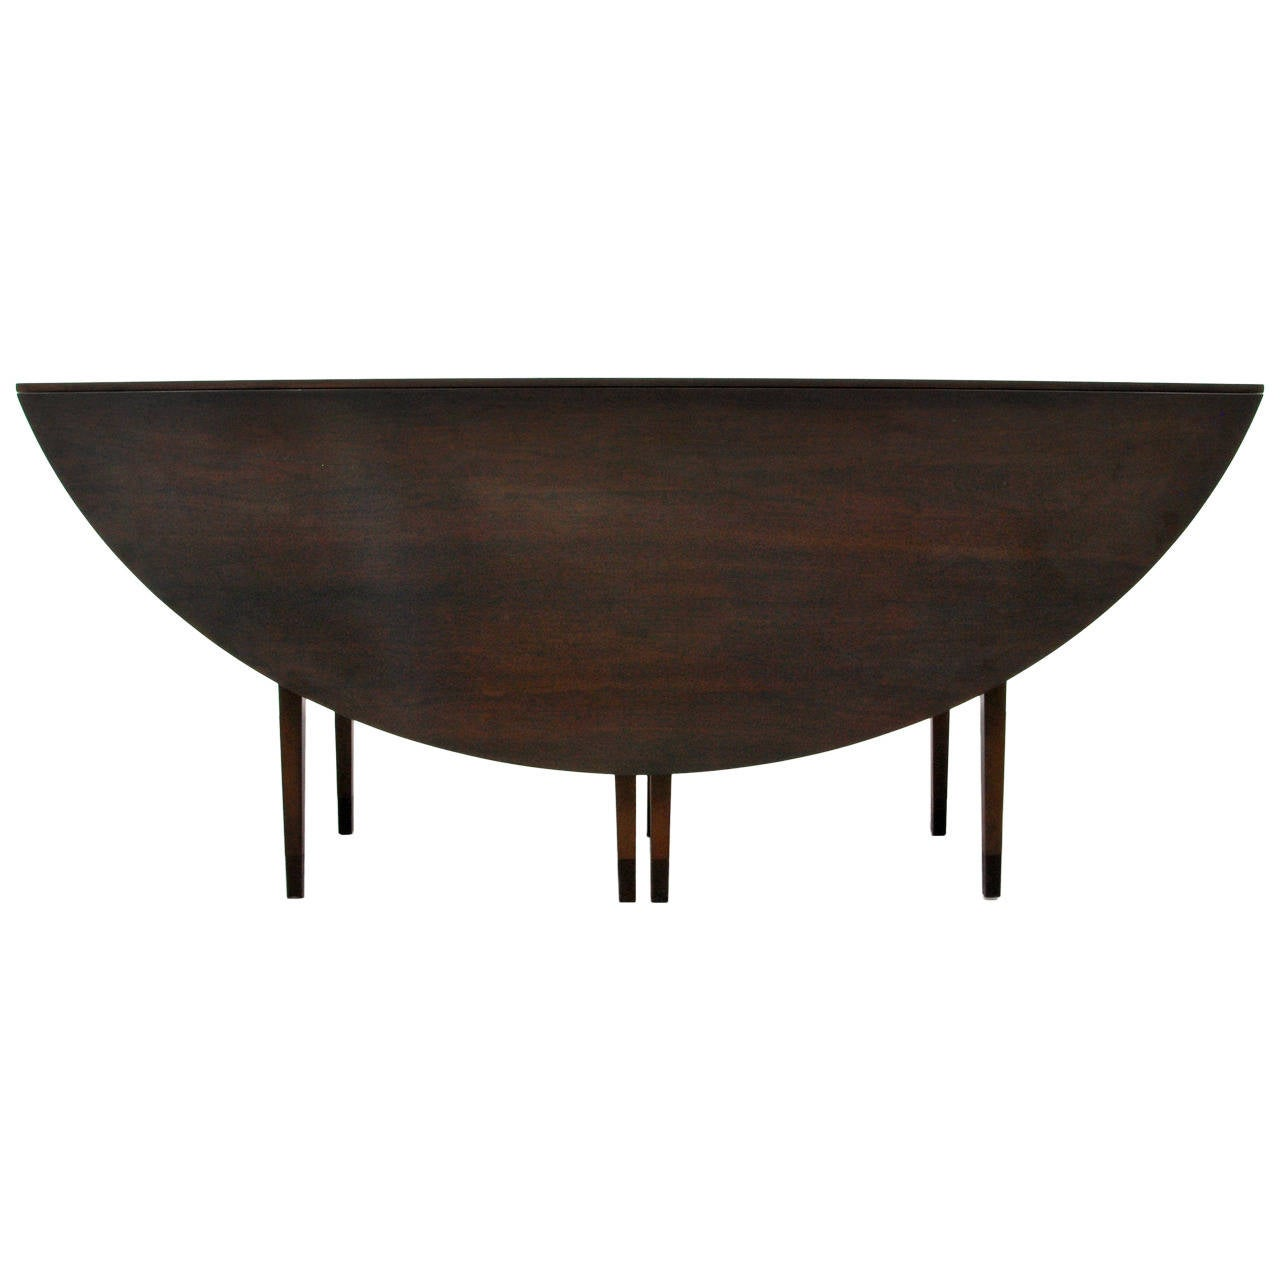 Edward wormley dining or console table for dunbar at 1stdibs for Sofa table restaurant